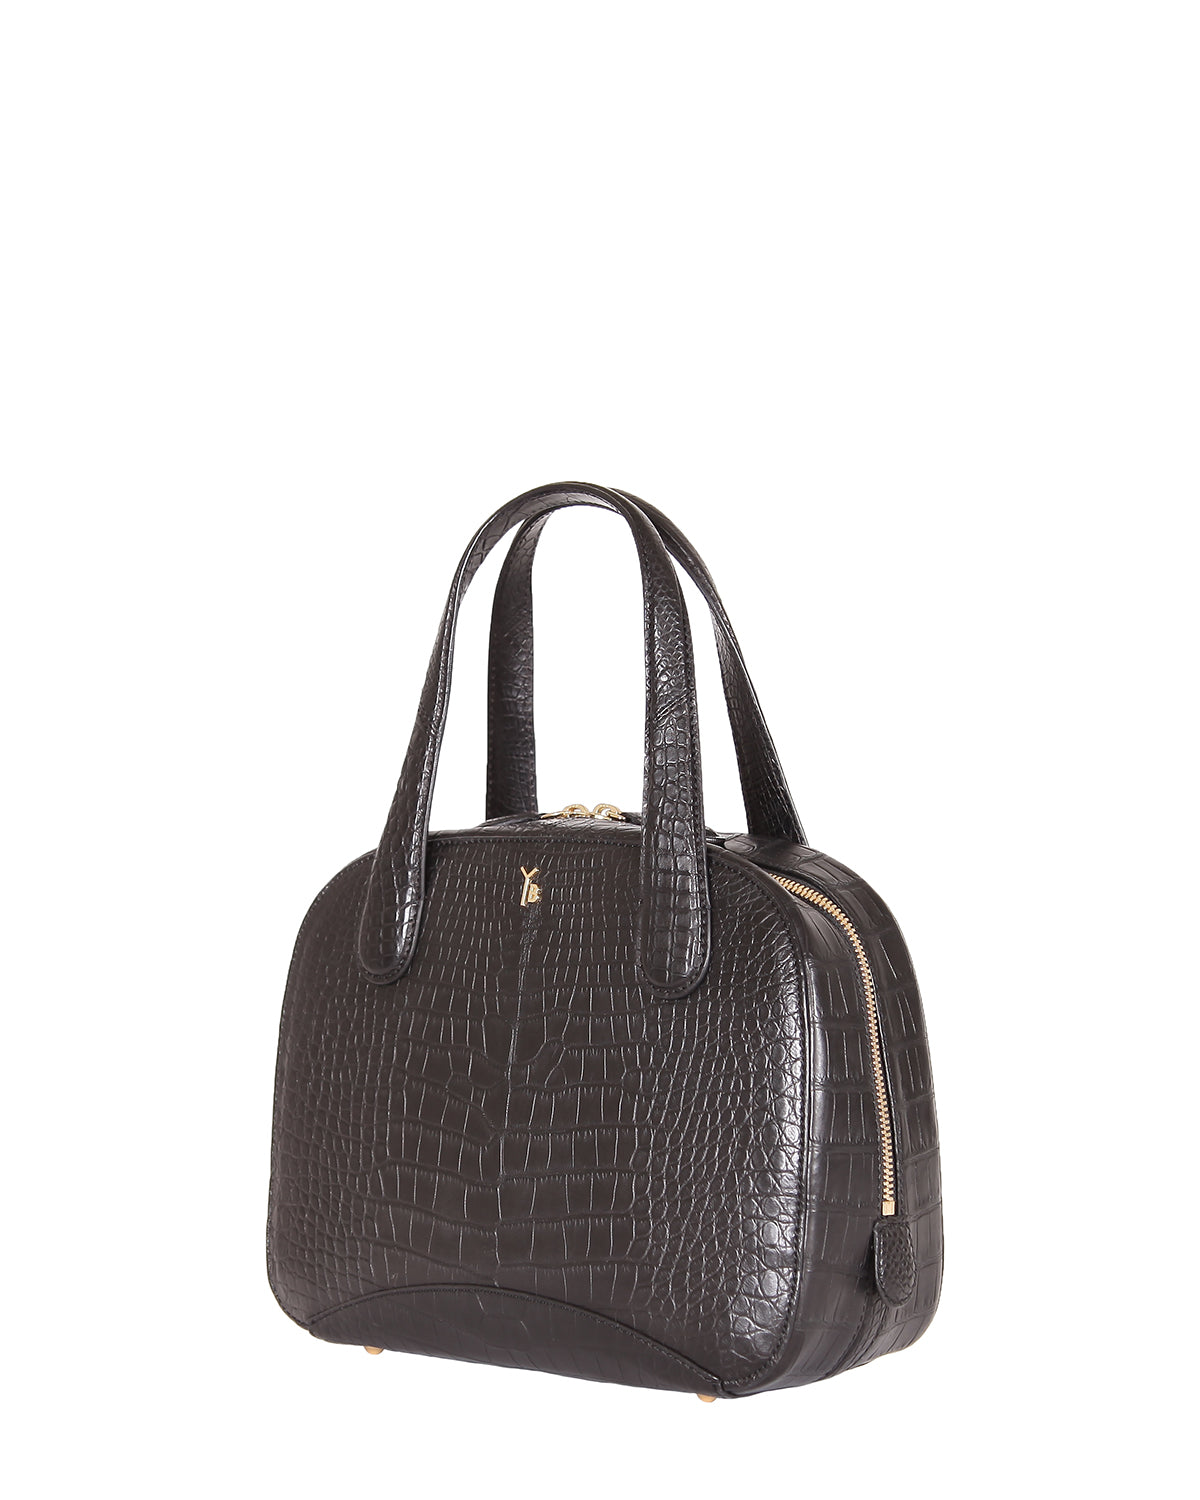 Yara Bashoor Adam Tote Handbag Black Yellow Gold Genuine American Alligator Angle View